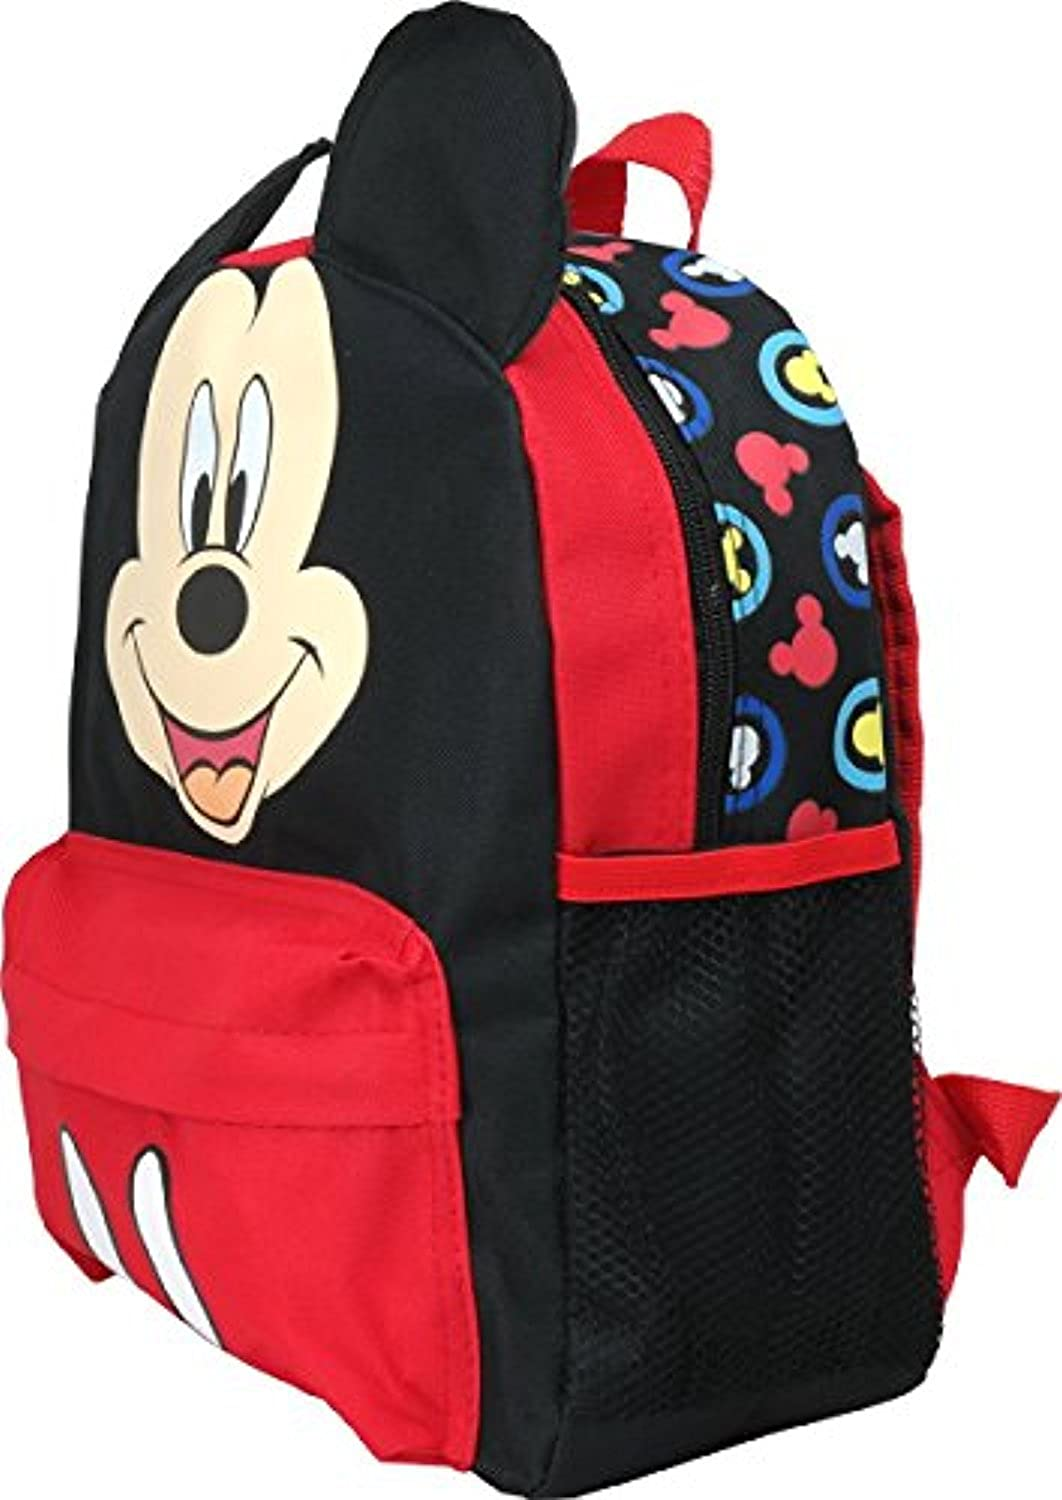 "Mickey Mouse Club House 3 D Ears Toddler 12"" Mini Backpack by Disney"